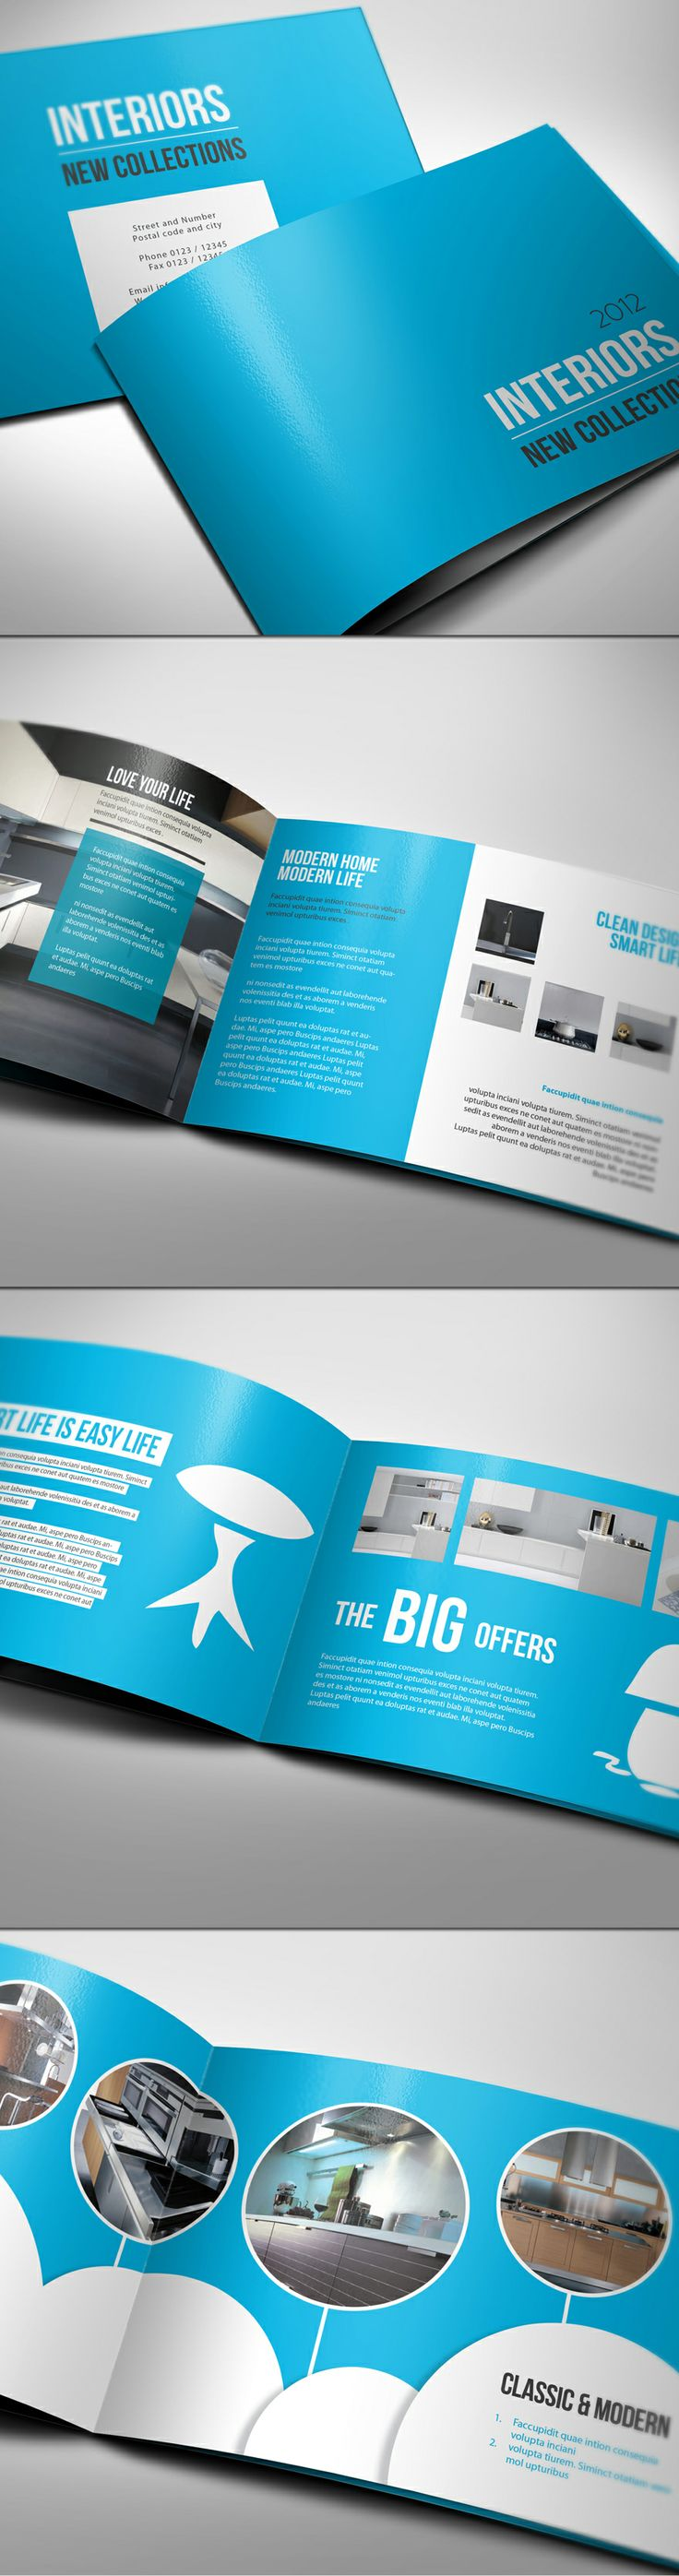 12 Folders e Flyers Super Inspirativos! | Des1gn ON - Blog de Design e Inspiração.                                                                                                                                                                                 Mais